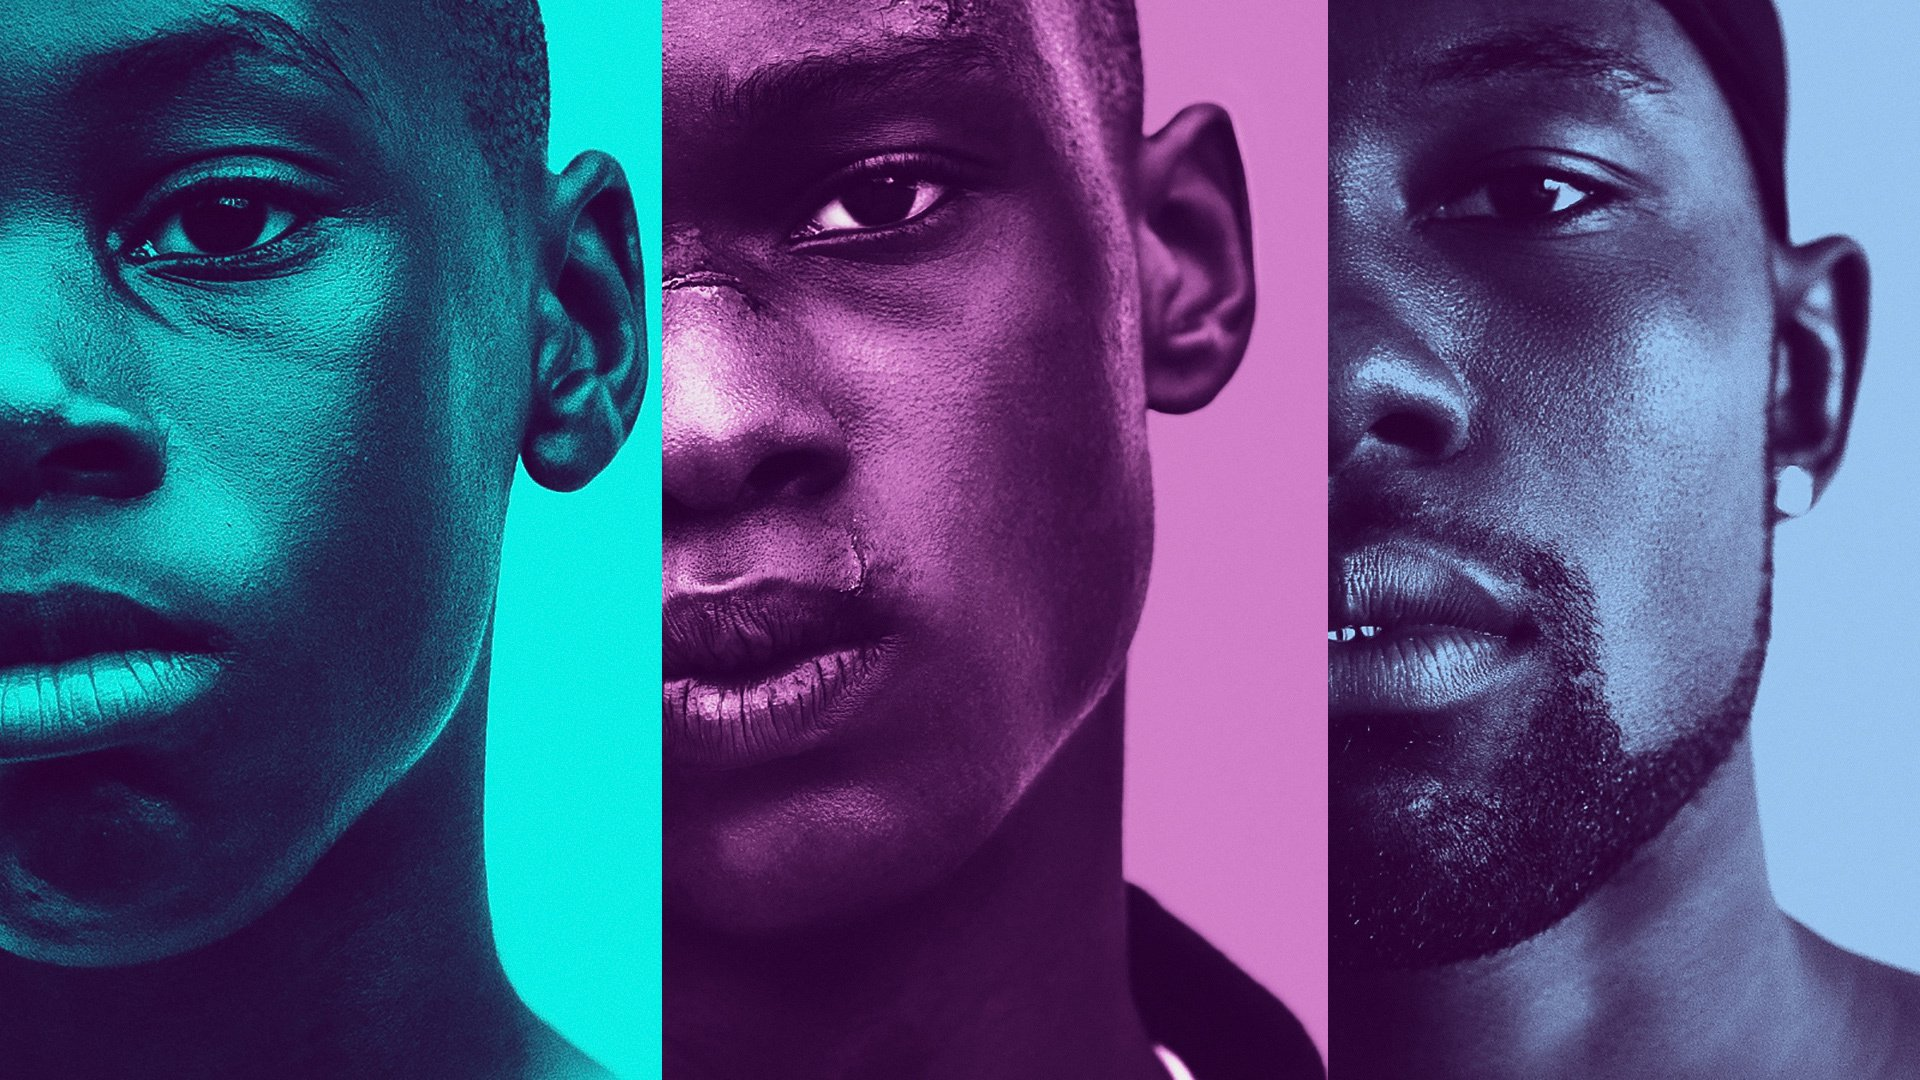 MOONLIGHT AT CINEMA FOR ALL Cinema For All